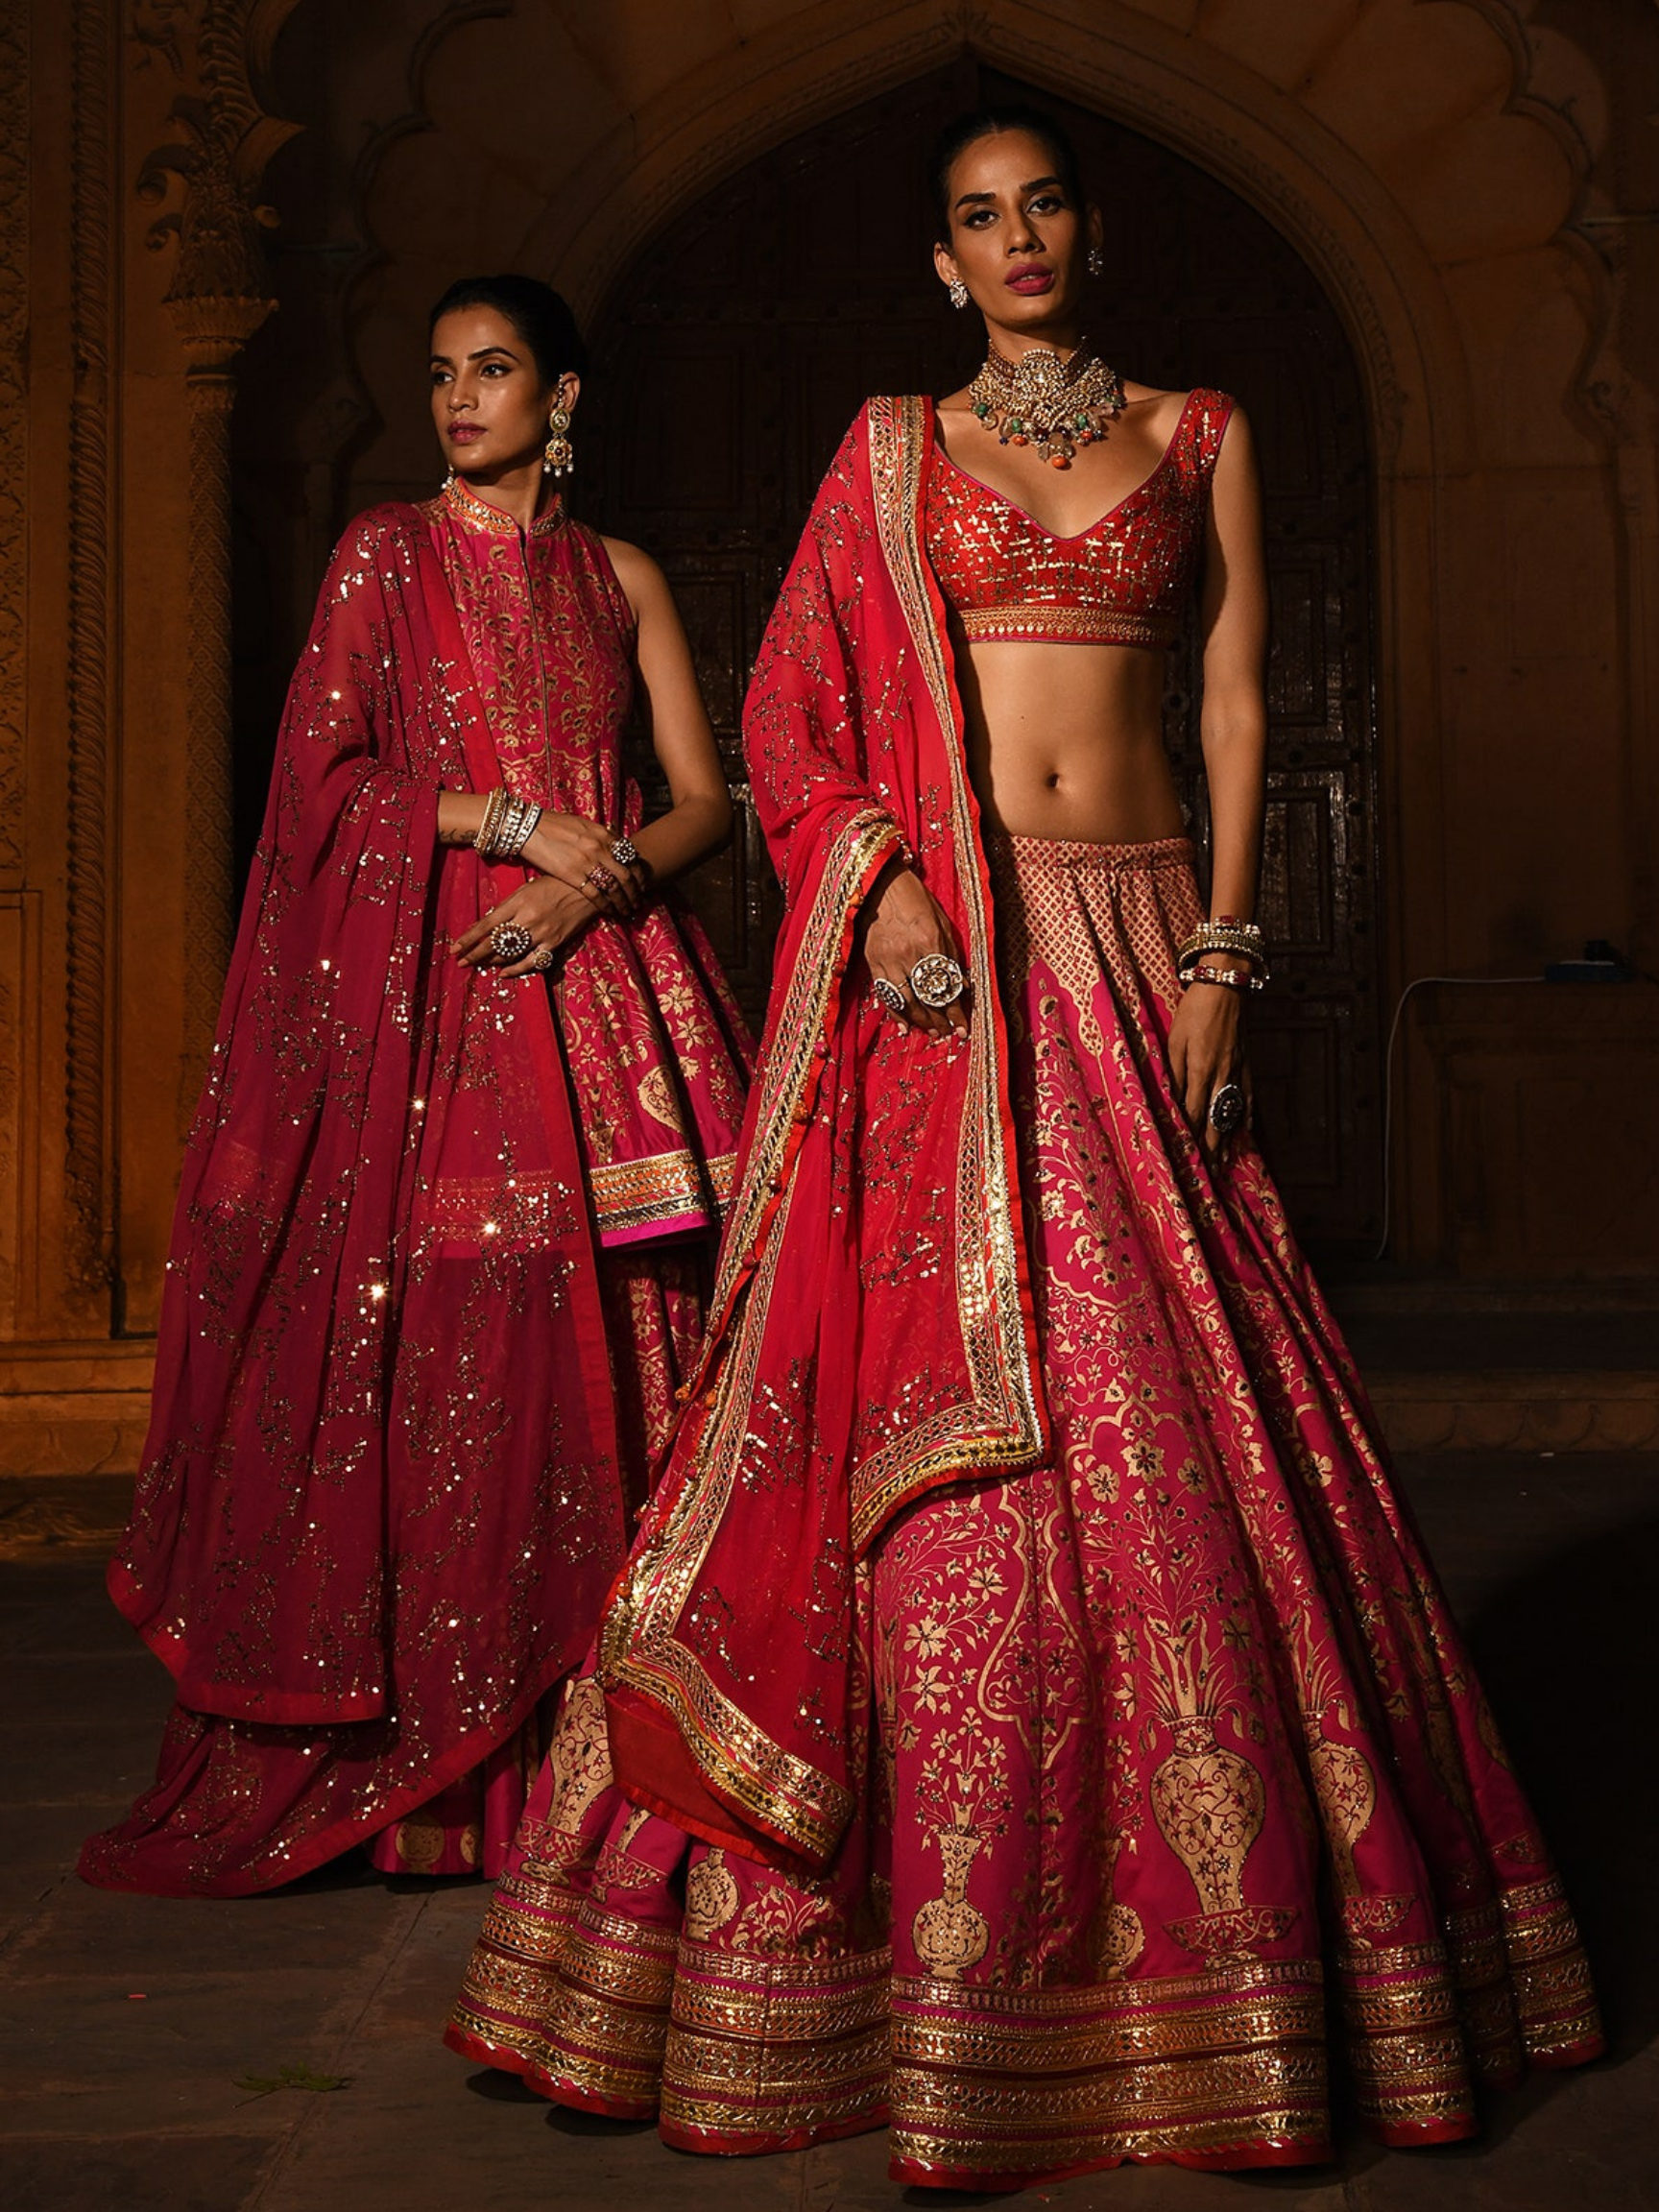 Desiroyale Reynu Taandon at India Couture Week 2020